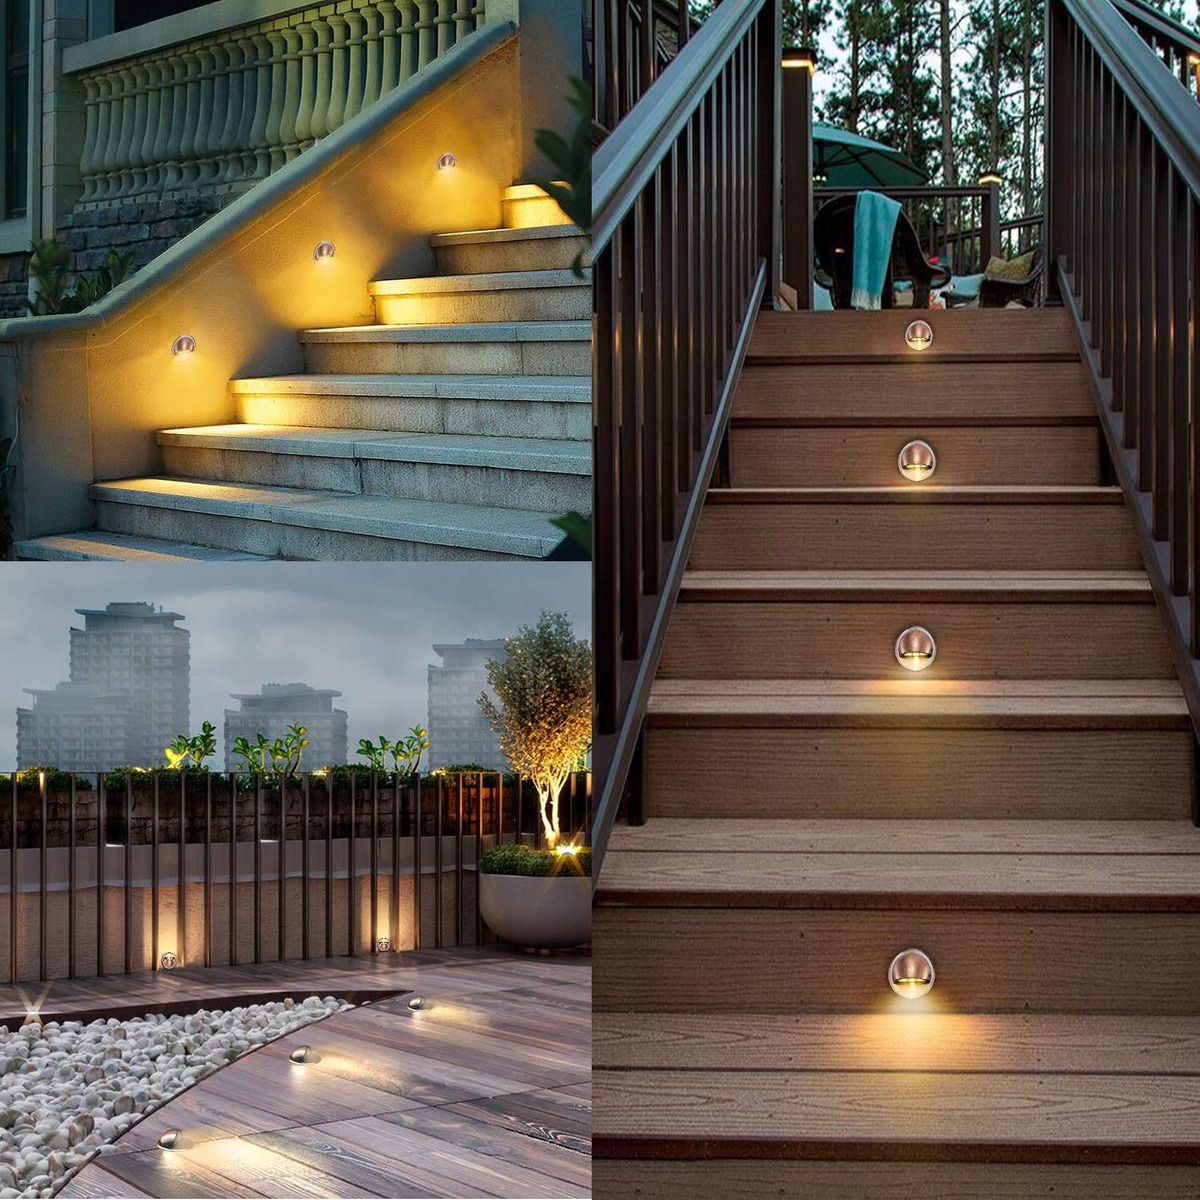 Chnxu Low Voltage Led Deck Lighting Kits With Transformer 1 296 900 En Mercado Libre